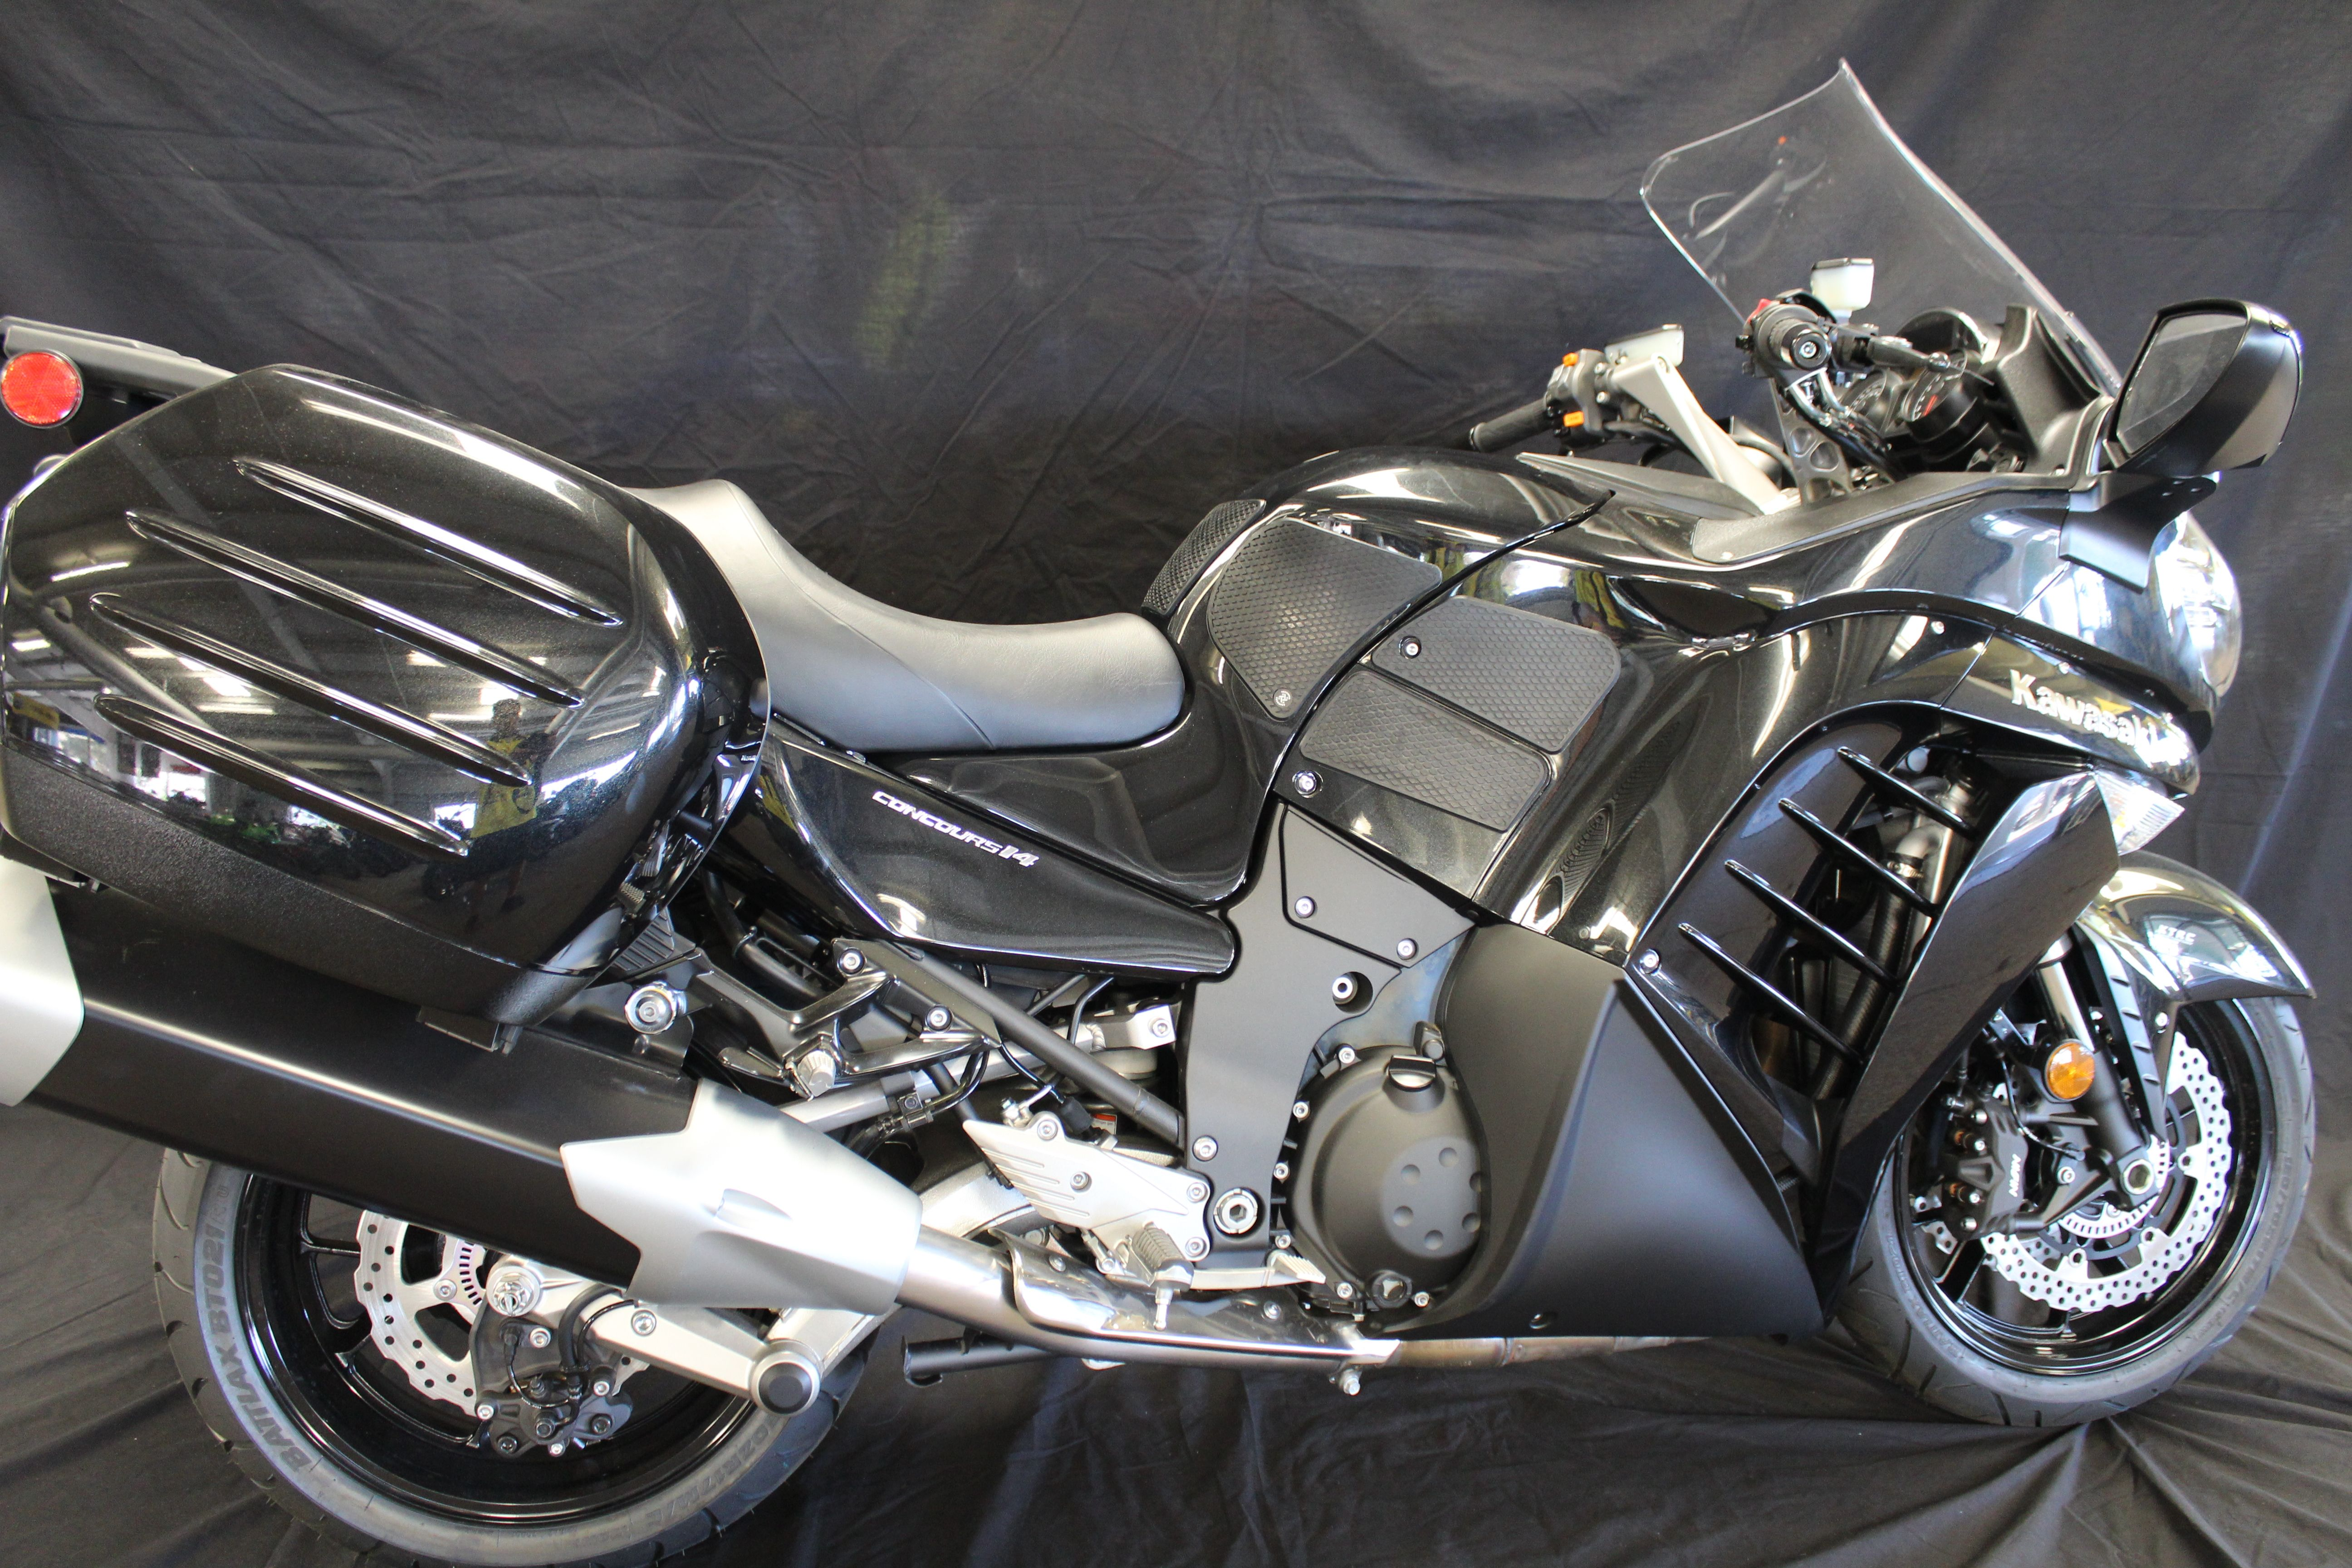 Check Out The Kawasaki Concours 14 With Gripstertankgrips Www Techspec Usa Com Touring Bike Kawasaki Motorcycle